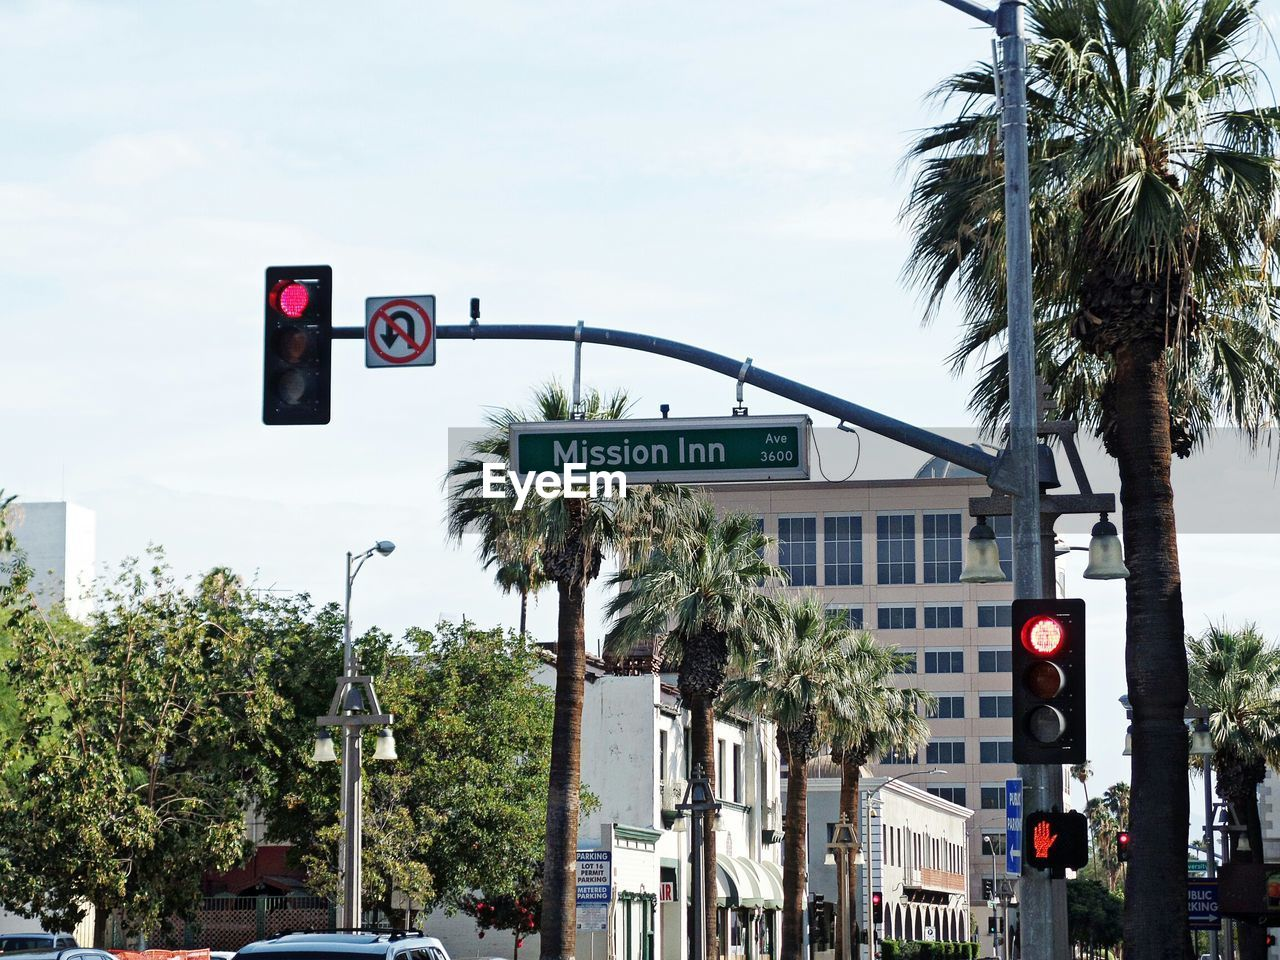 road sign, tree, direction, guidance, stoplight, communication, palm tree, day, one way, outdoors, architecture, sky, street name sign, city, no people